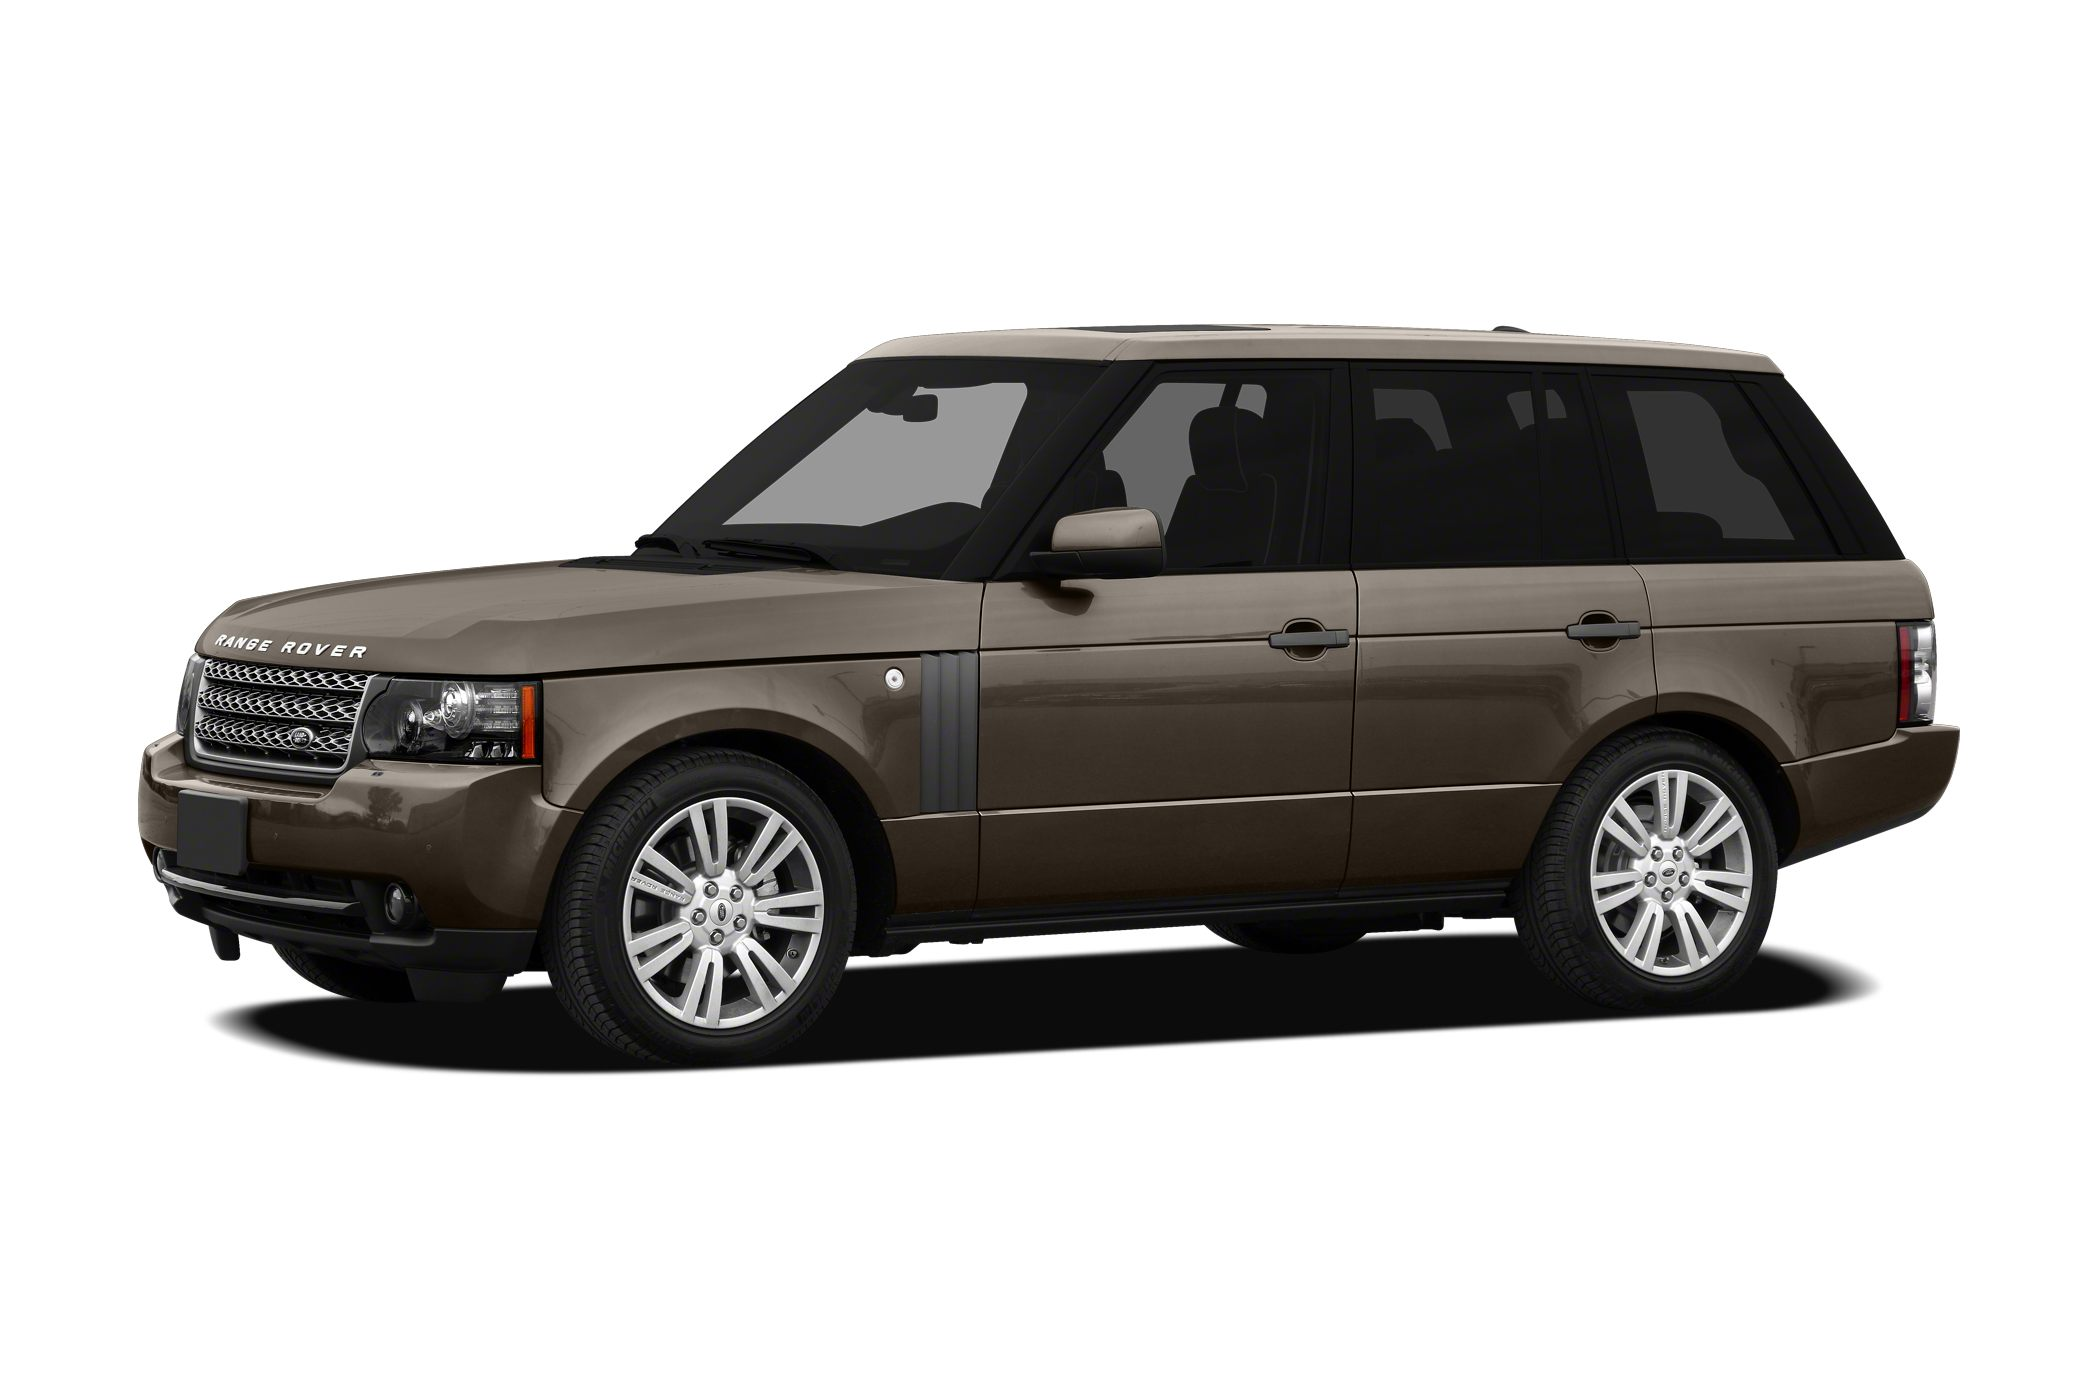 2011 Land Rover Range Rover HSE SUV for sale in Monroeville for $43,977 with 52,000 miles.